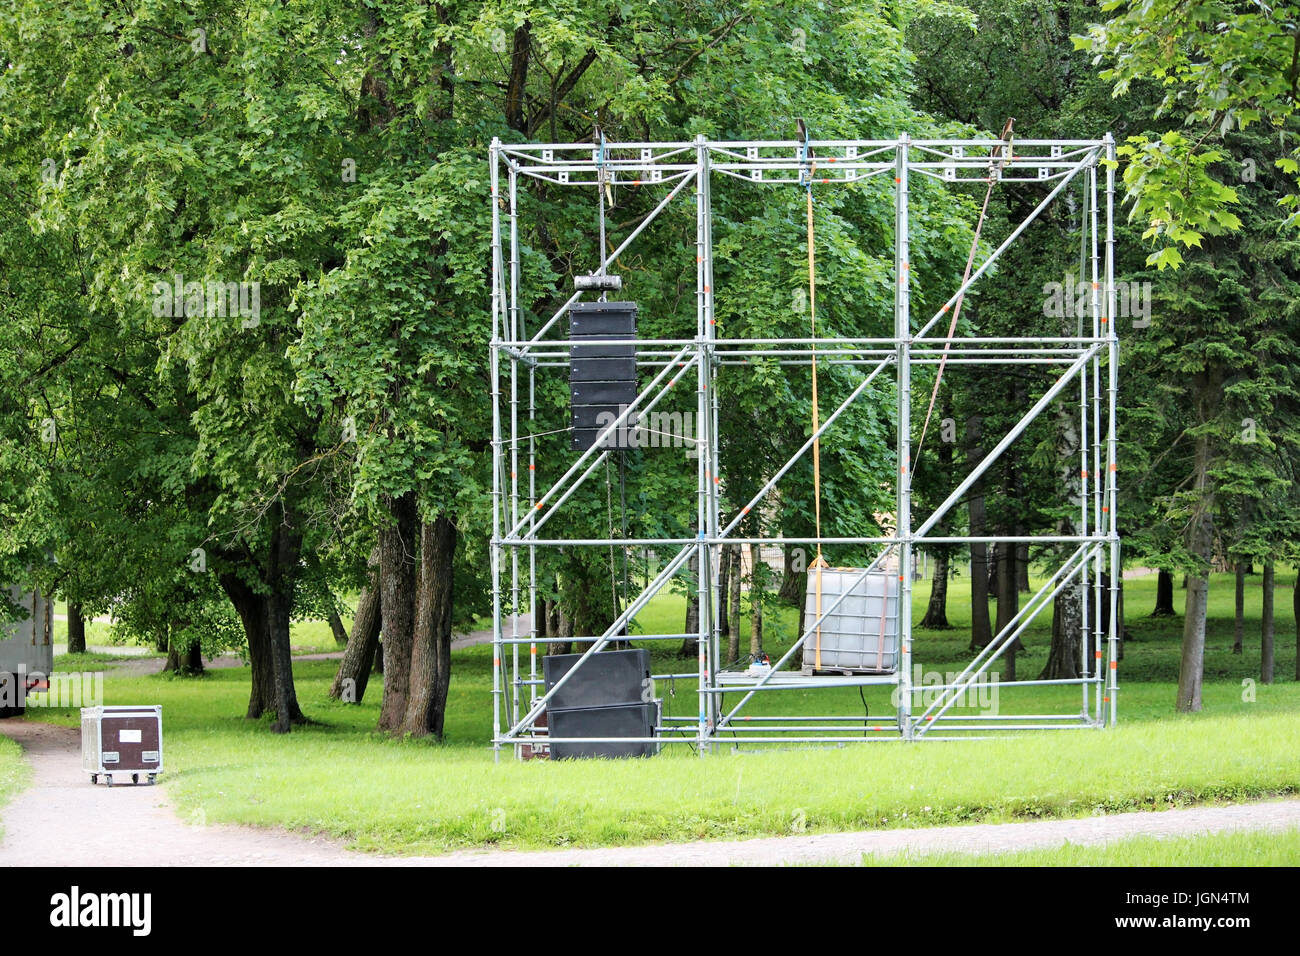 Metal structure in the form of a frame for attaching musical columns and a screen for broadcasting events in the park Stock Photo